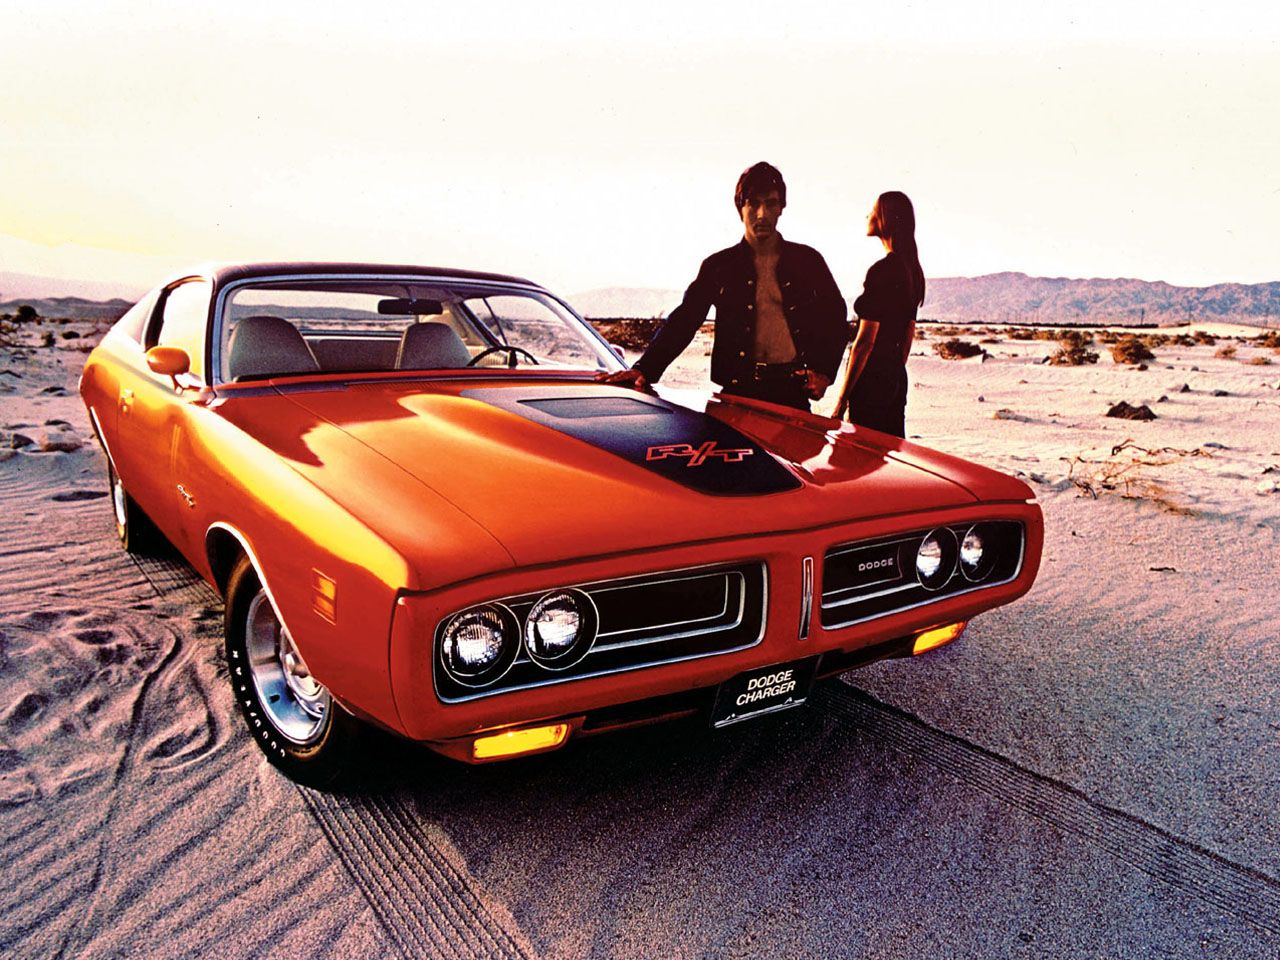 View our large inventory of the classic dodge chargers for sale at great prices third generation used 2 doors dodge chargers coupes 1973 and 1974 models